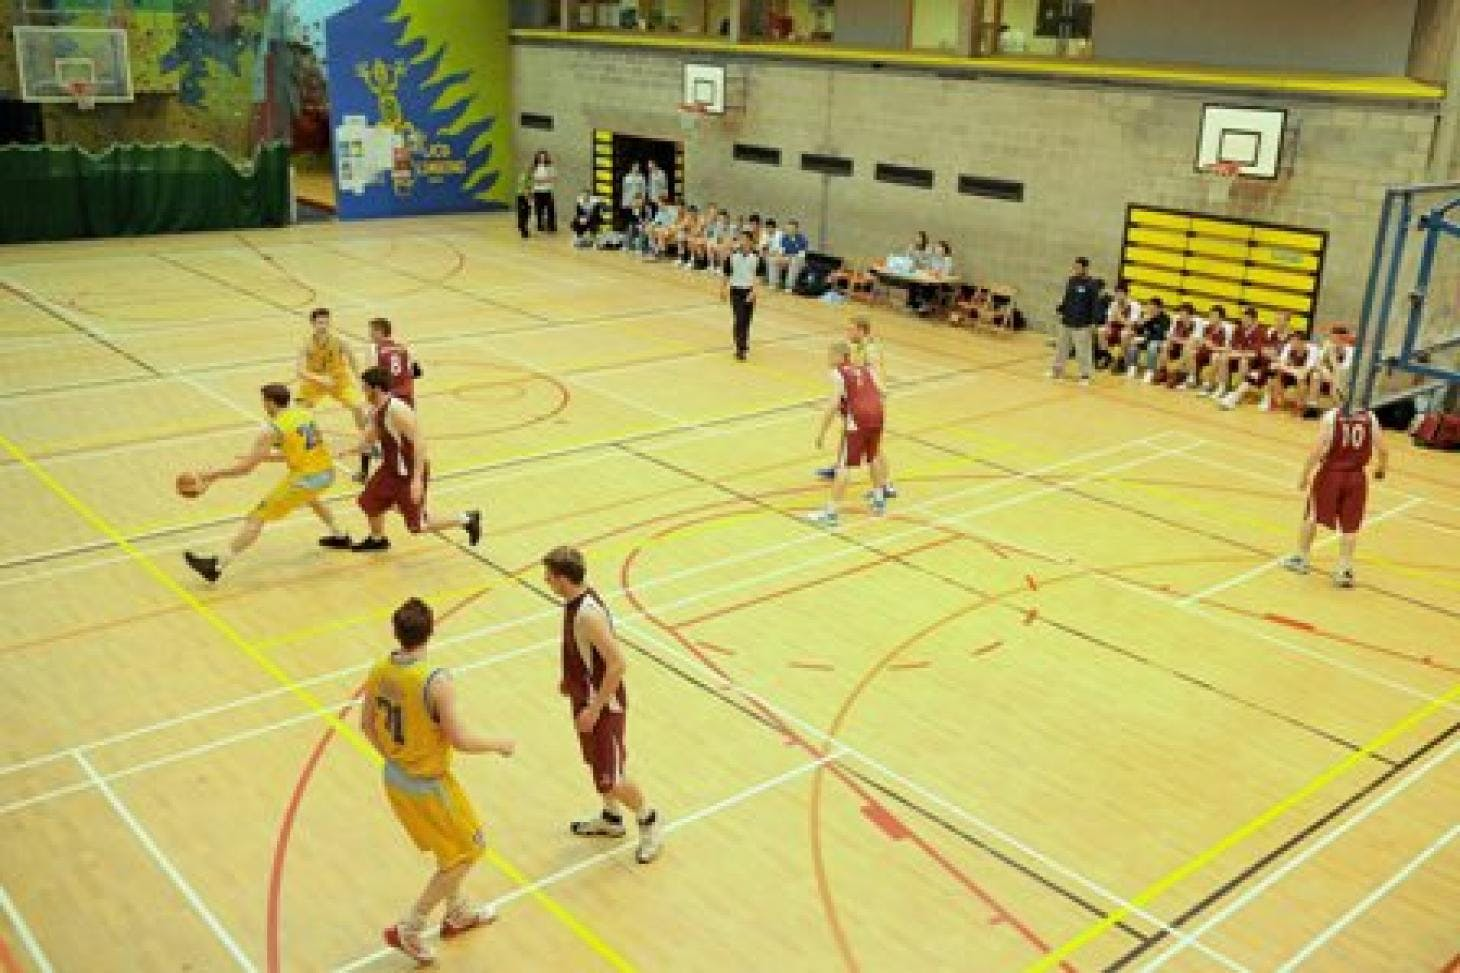 University College Dublin Indoor basketball court